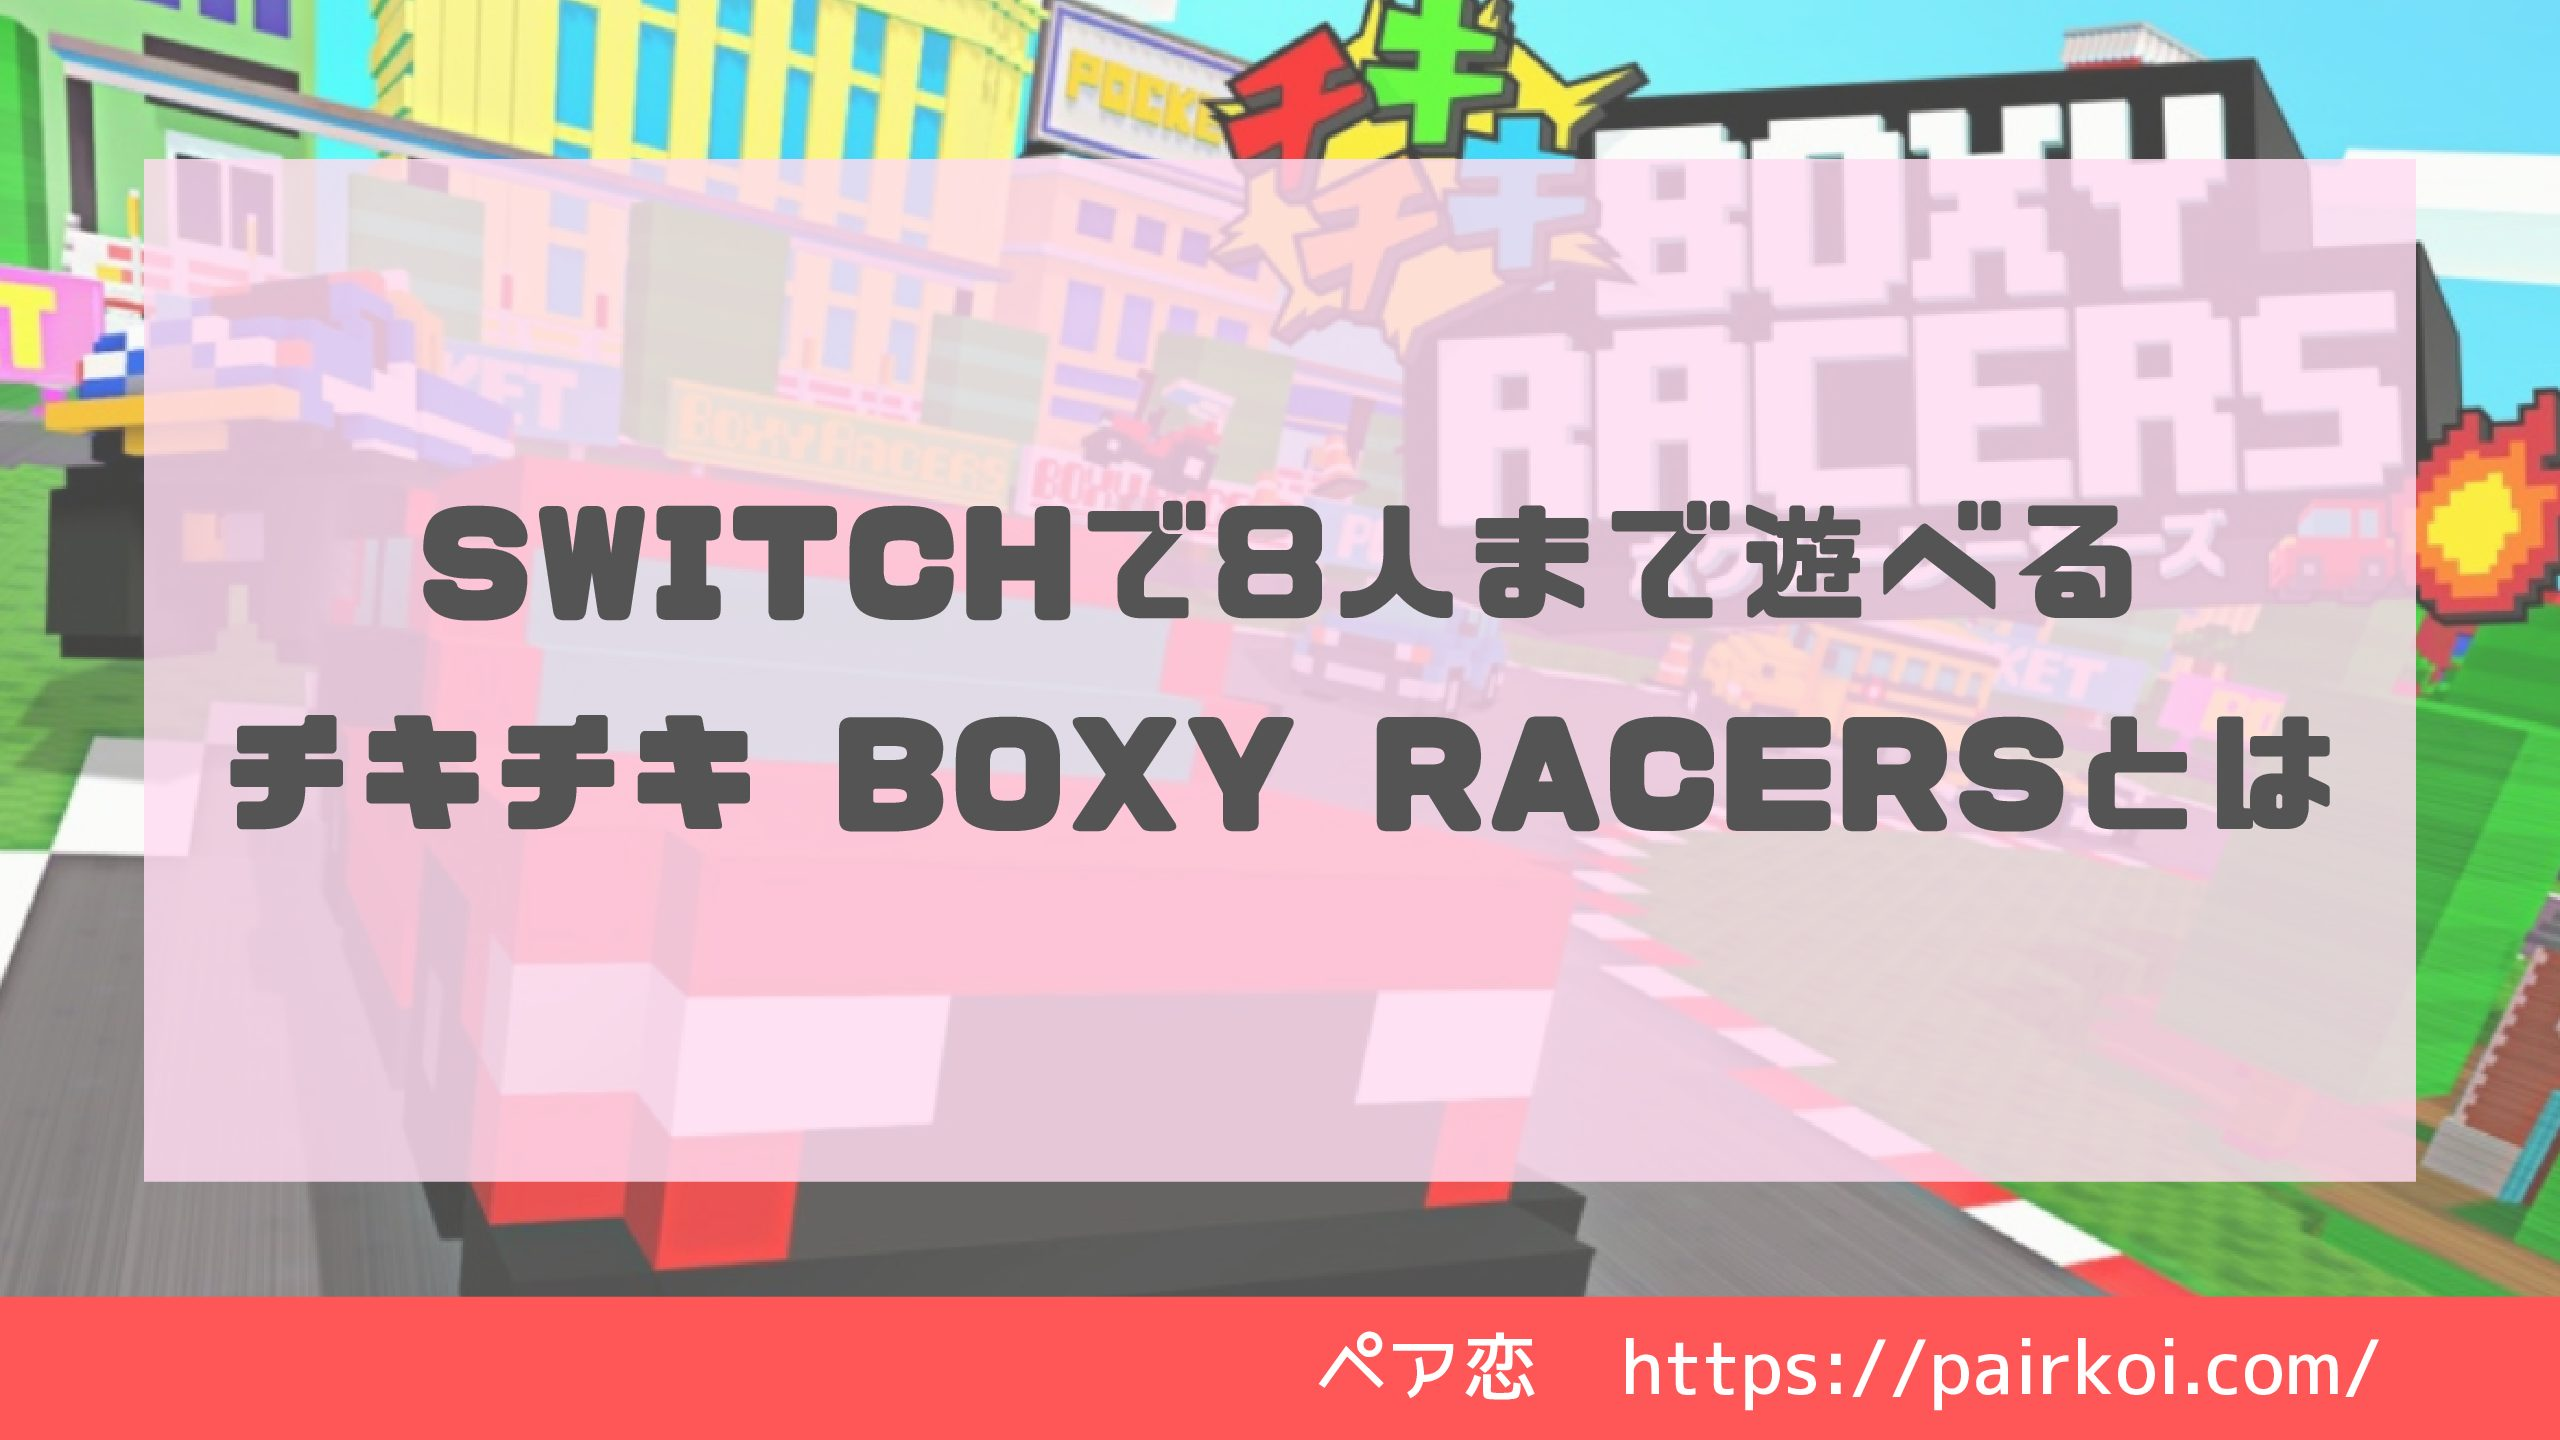 Switchで8人まで遊べるチキチキ BOXY RACERSとは